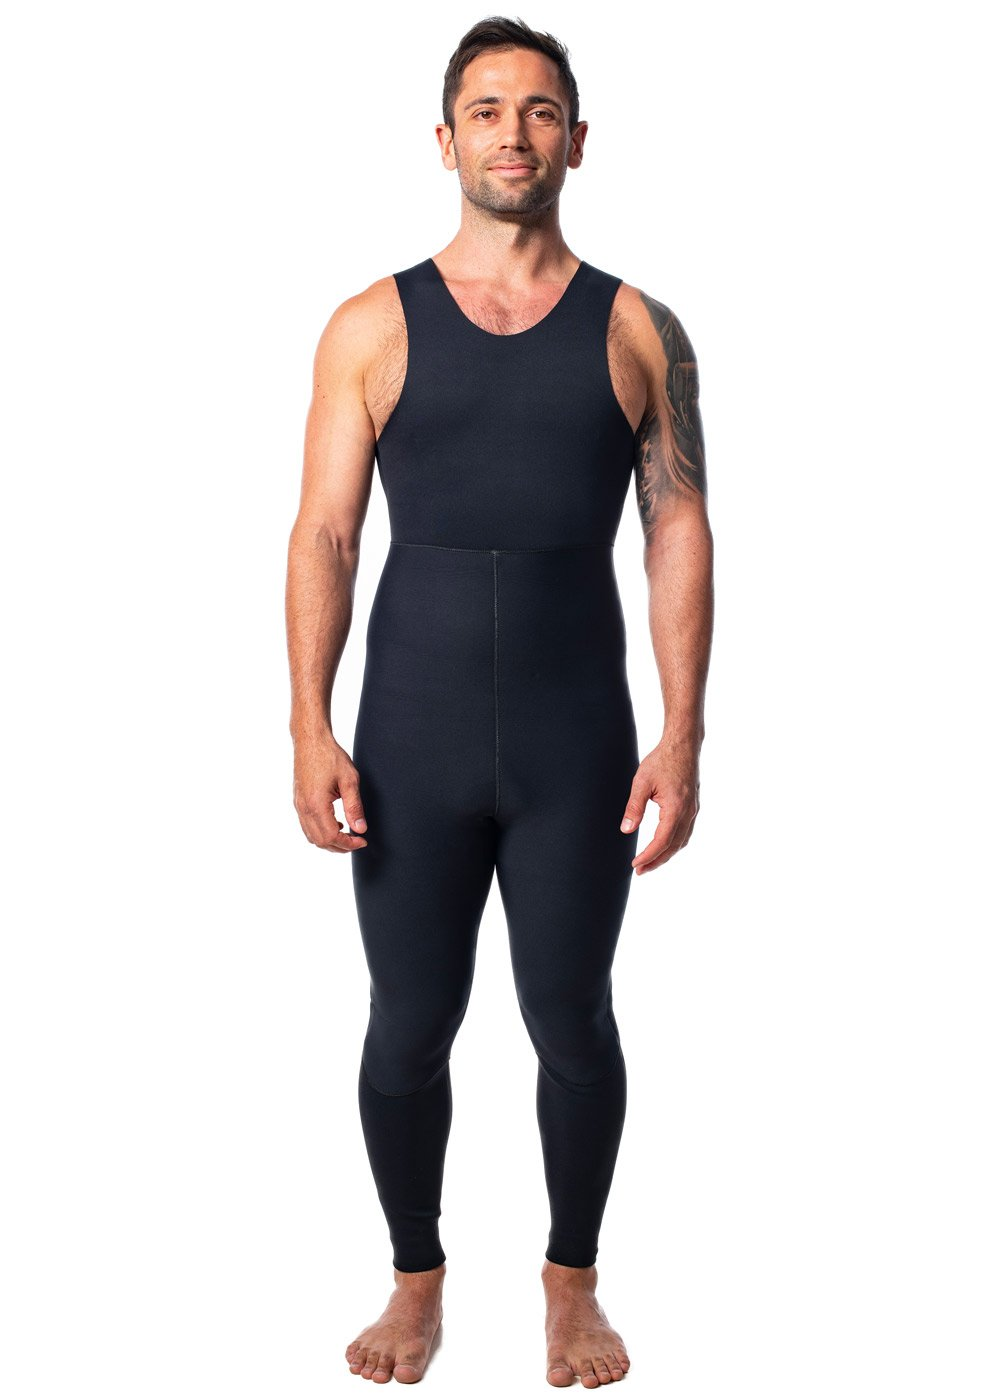 SALT Mens 3.5mm Hooded 2 Piece Wetsuit